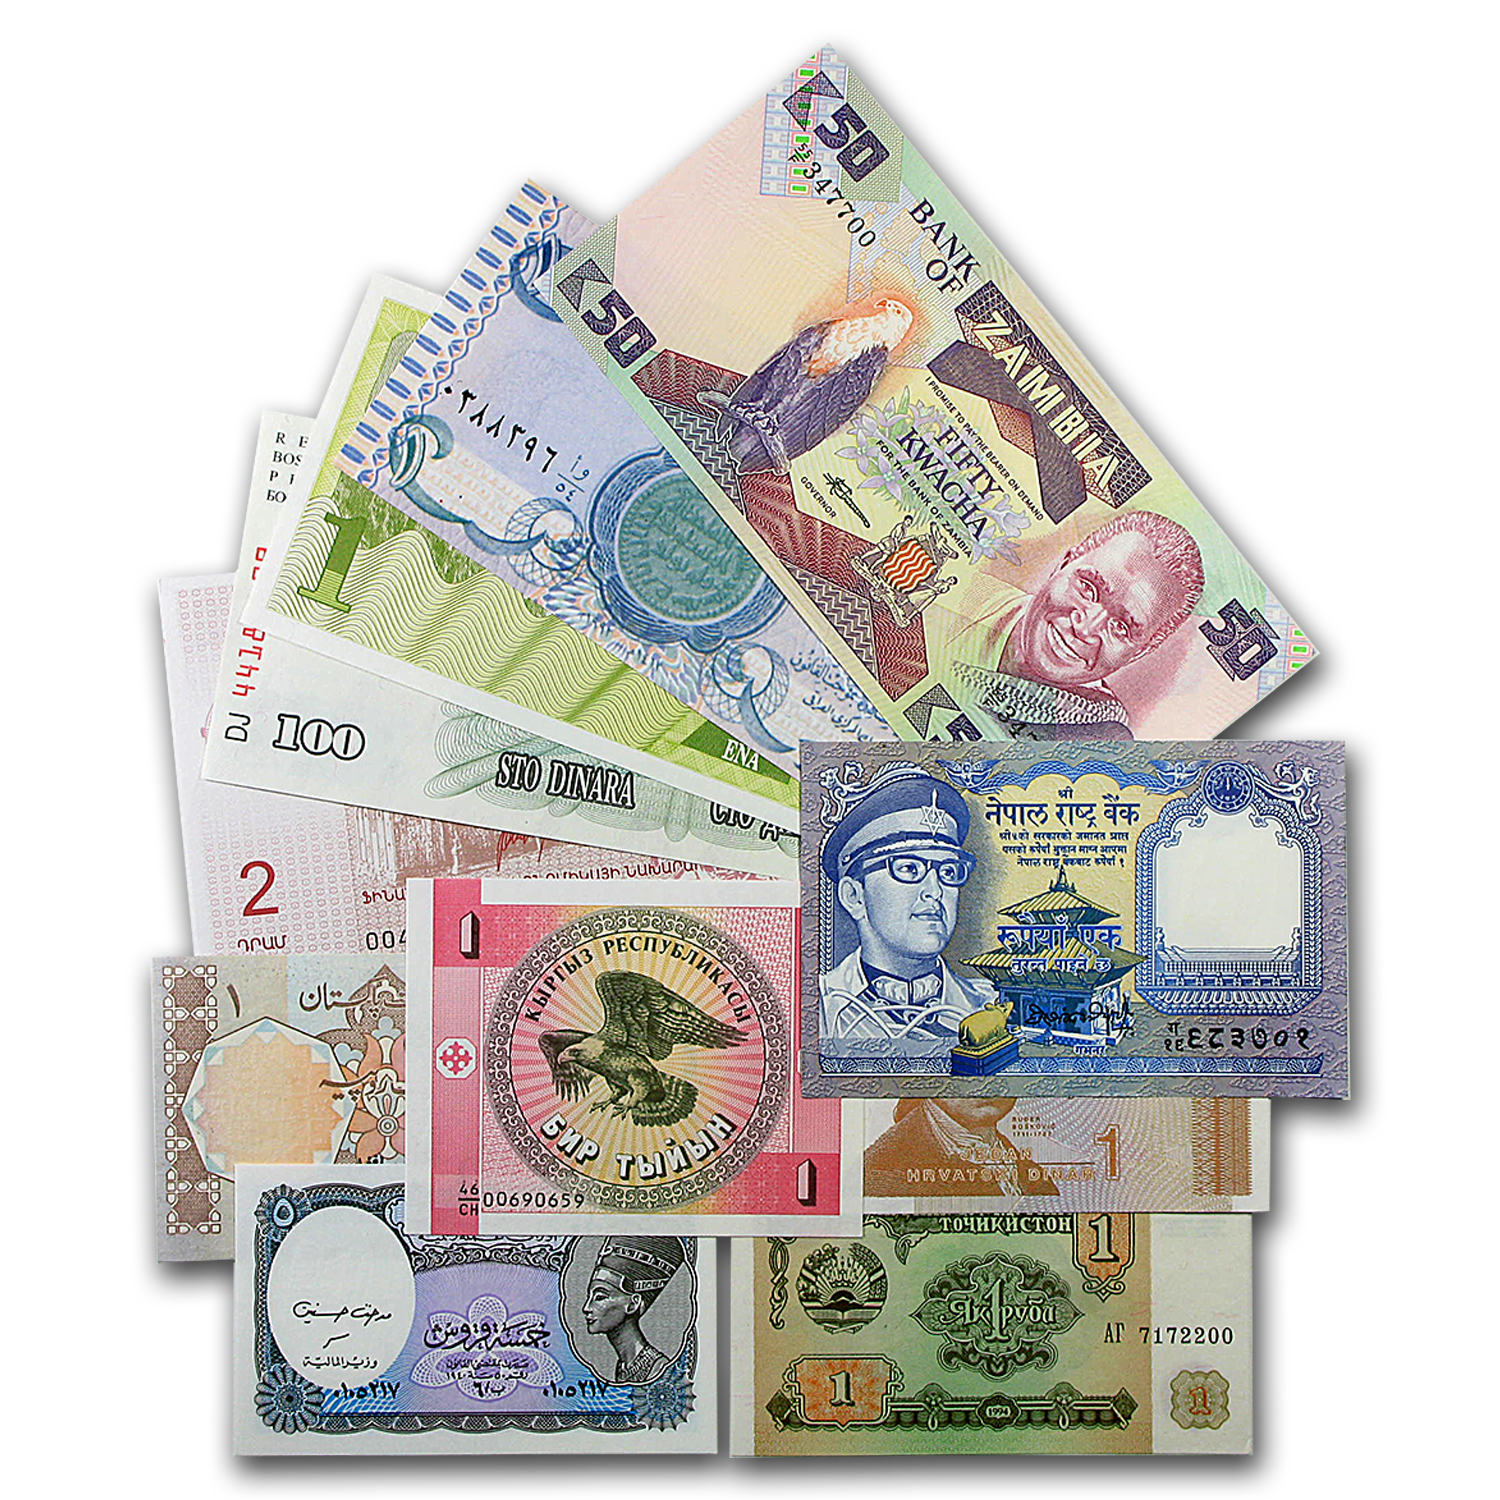 25 Piece World Bank Note Assortment Uncirculated